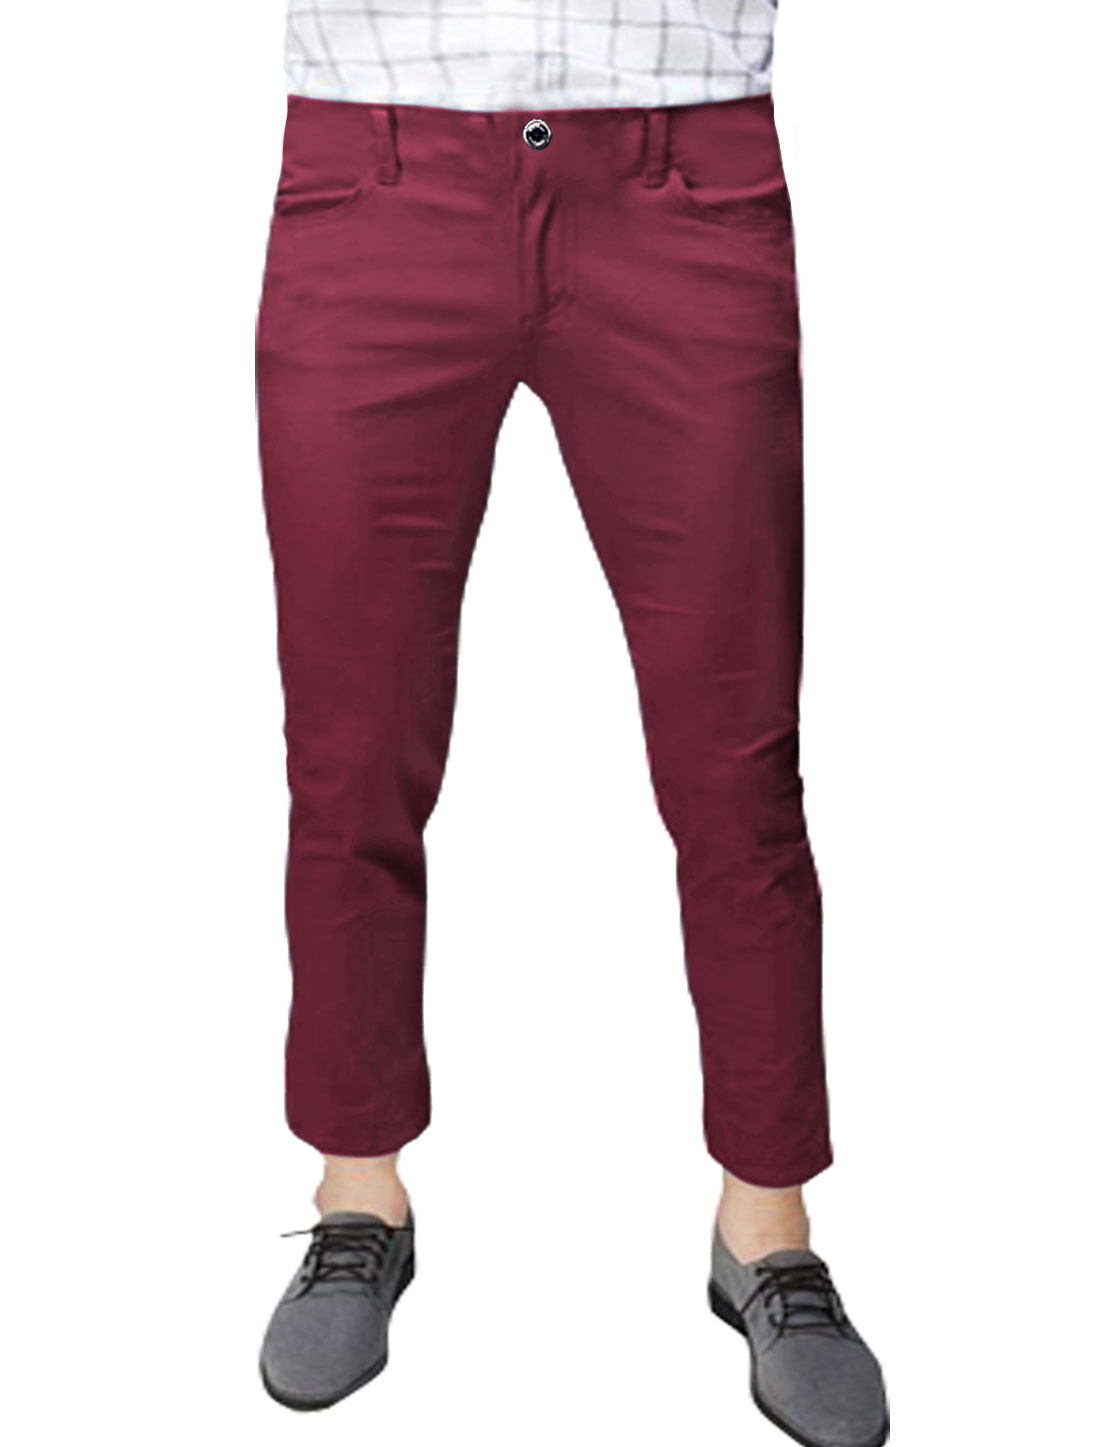 Men Mid Rise Zip Fly Slant Pockets Casual Cropped Pants Red W32